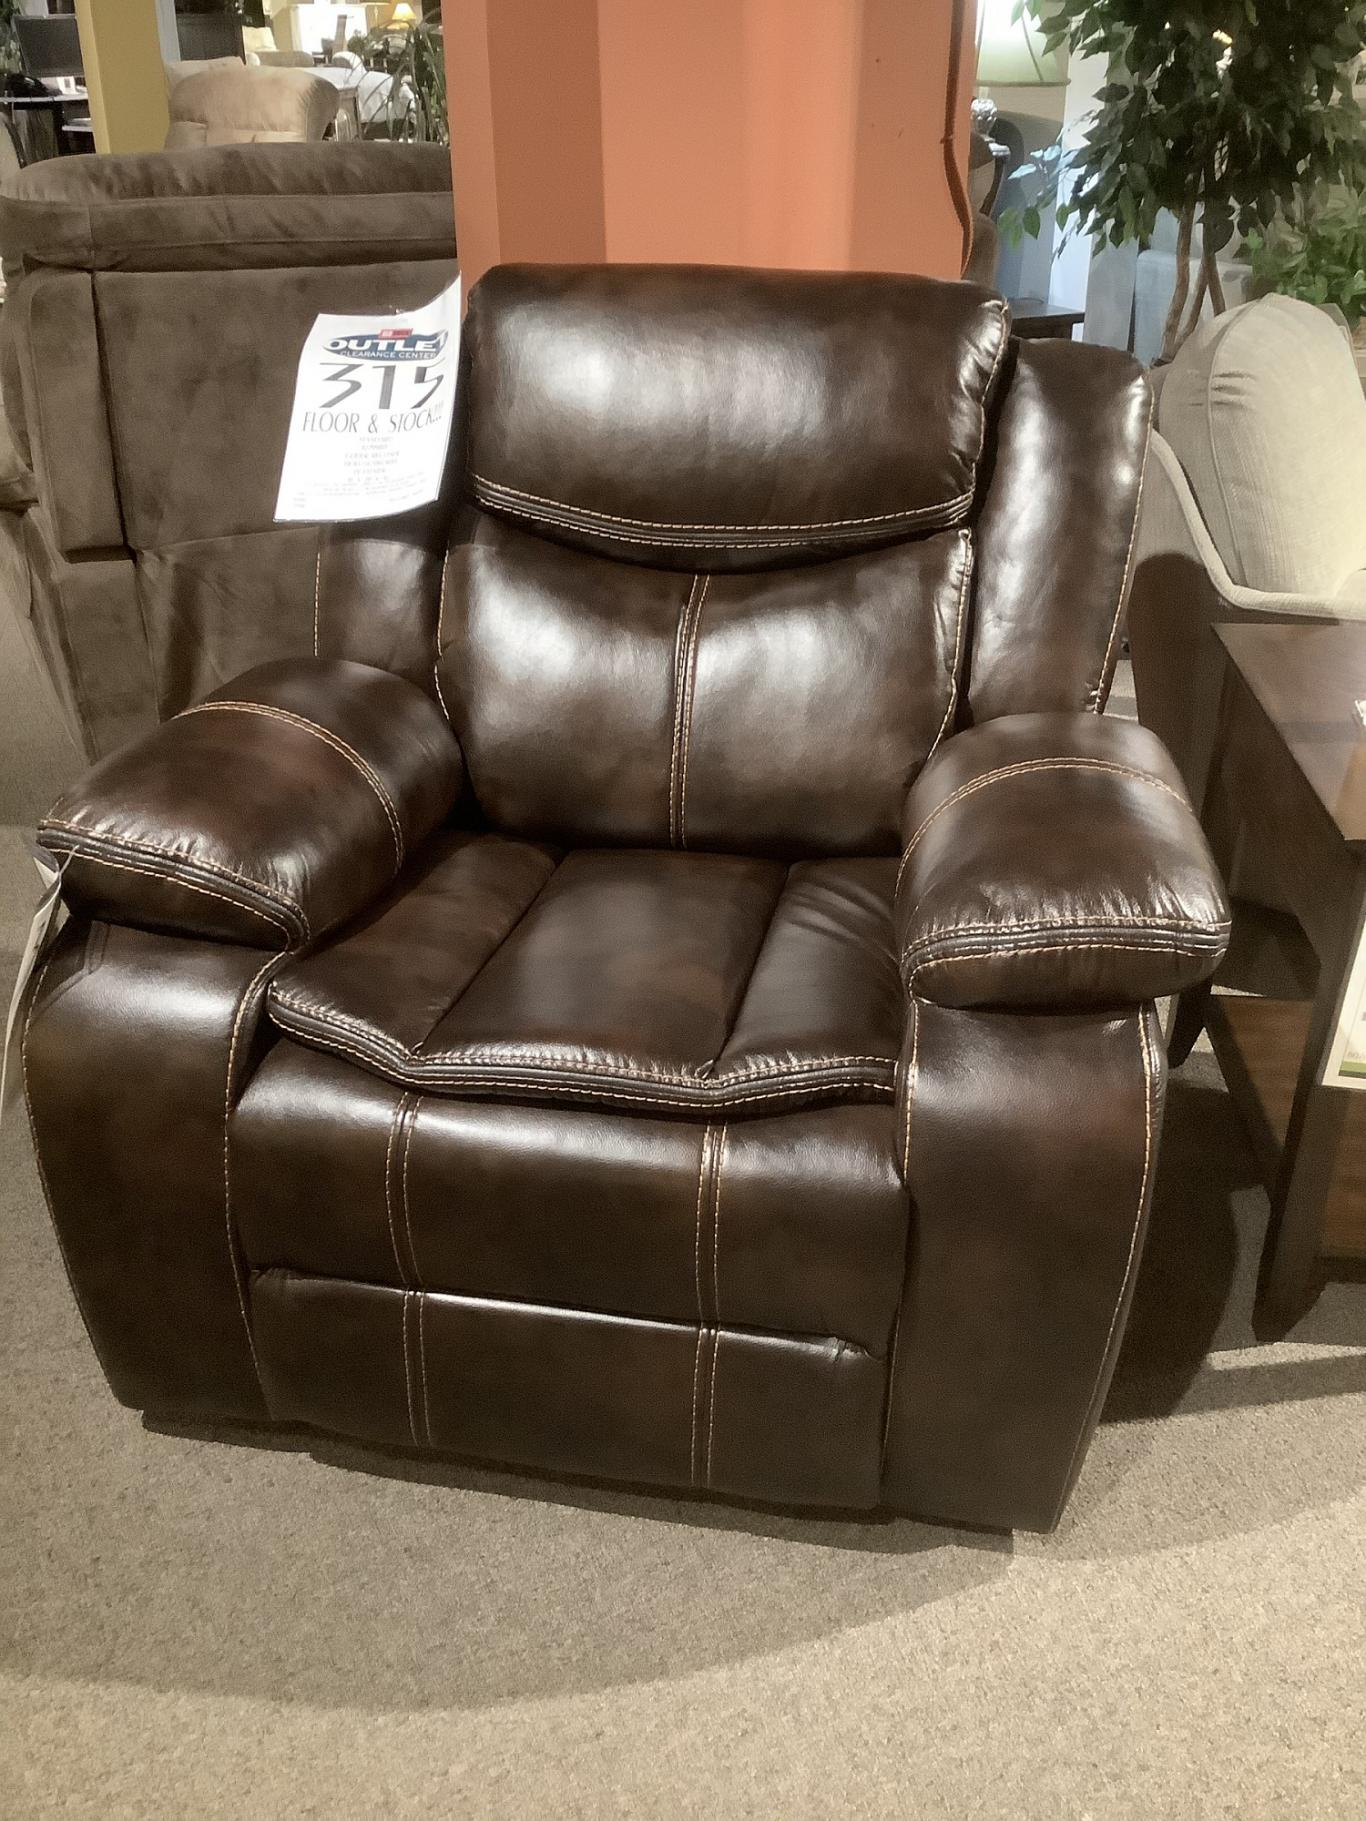 Clearance - Hollingsworth Glider Recliner by Standard,OBO